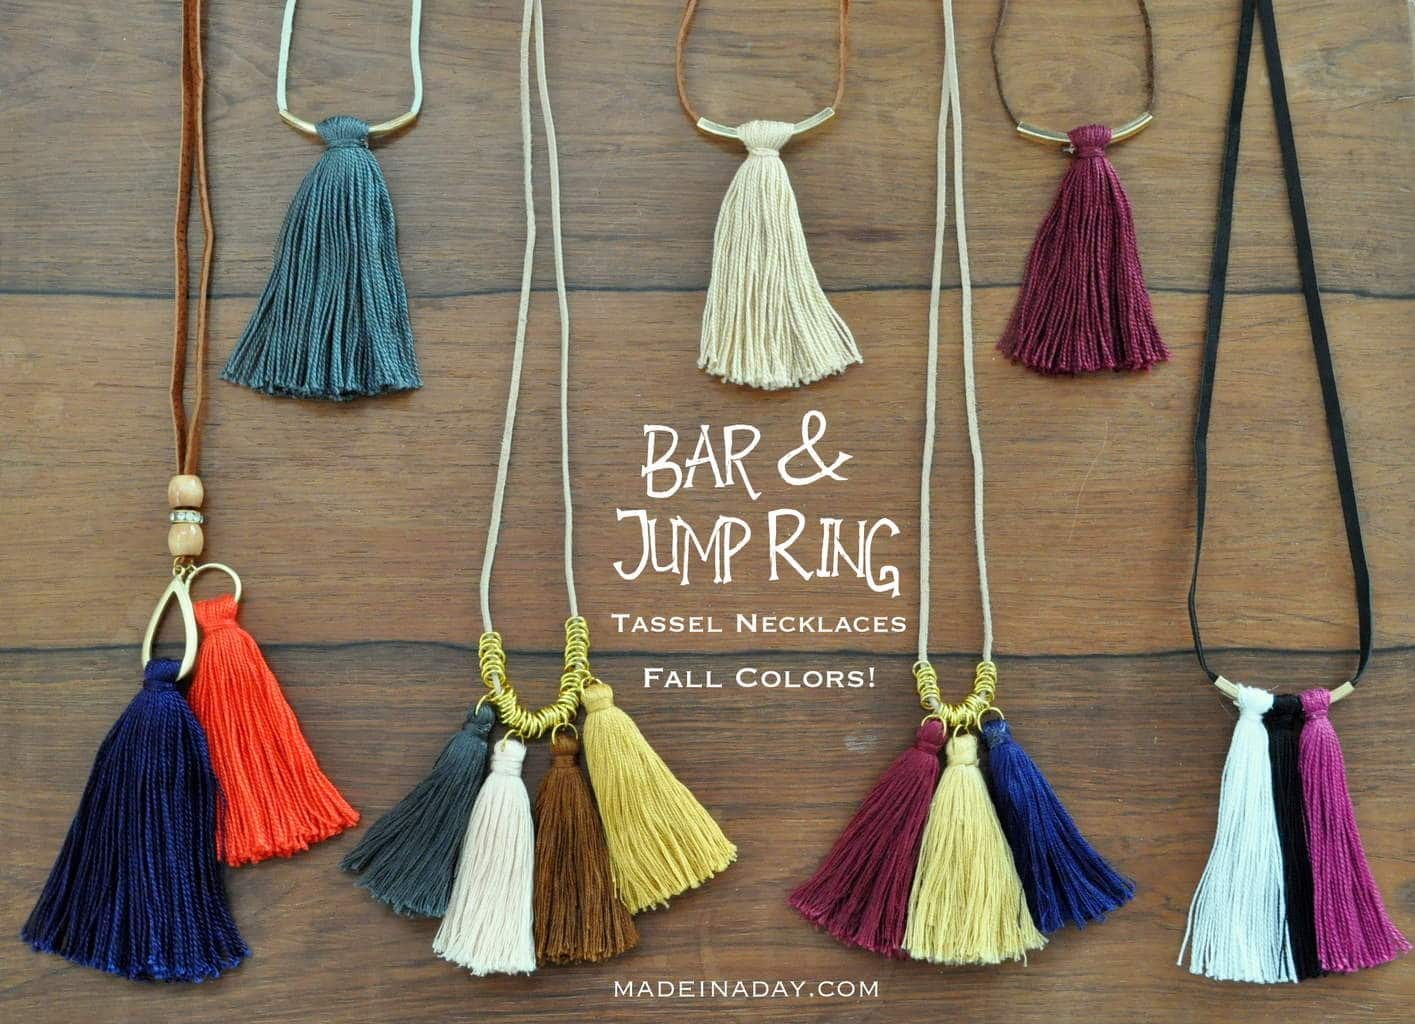 Bar Tassel Jump Ring Tassel Necklaces madeinaday.com